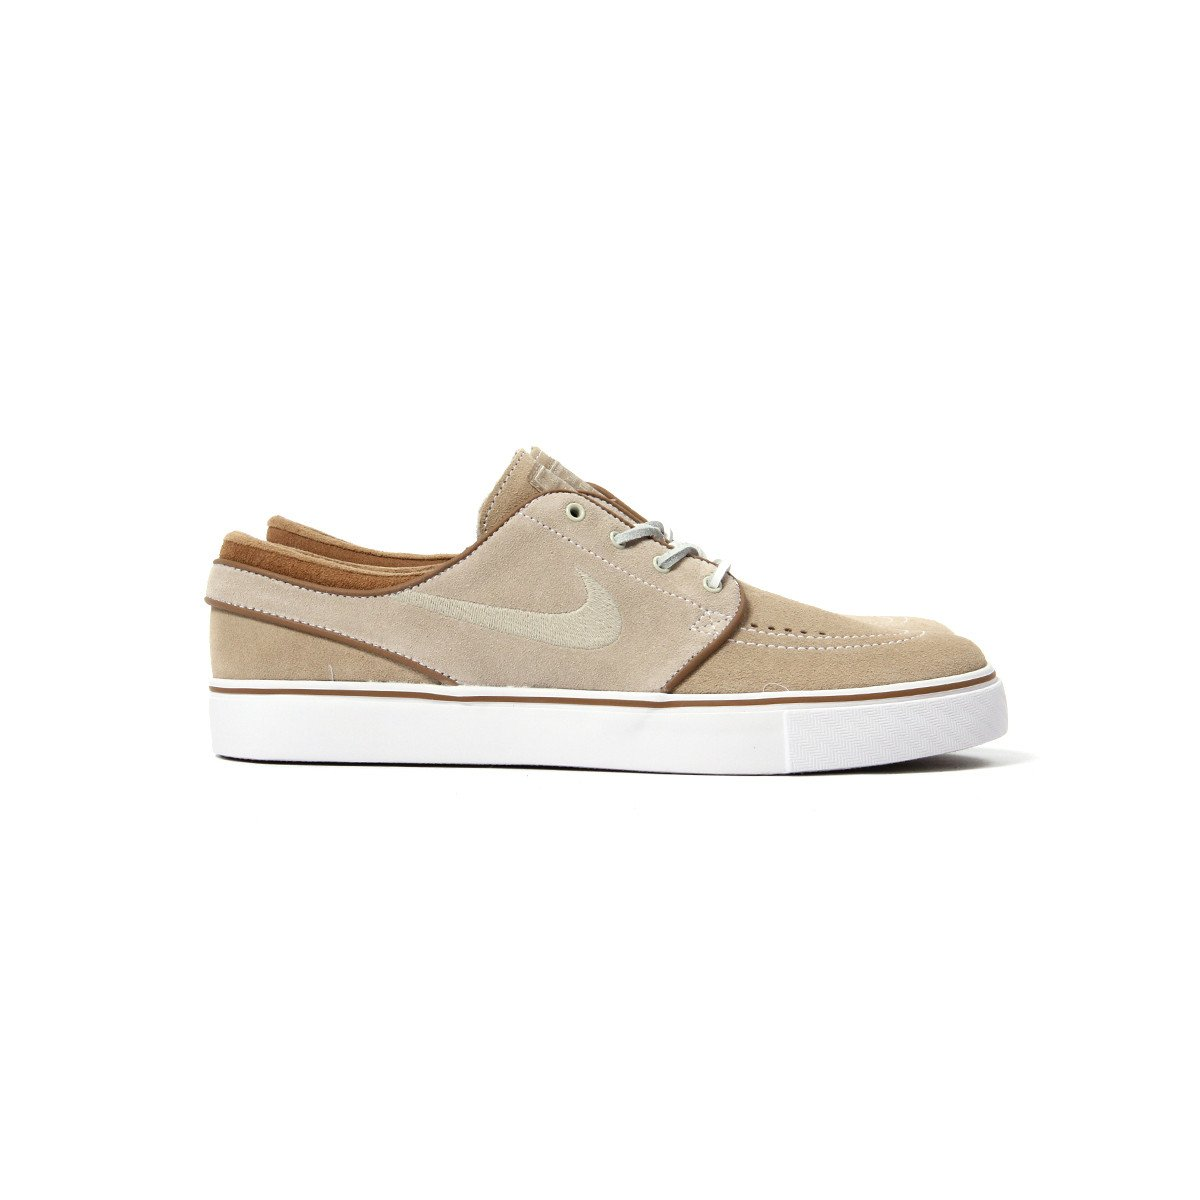 differently 0c2a4 e3328 Now available   Nike SB Zoom Stefan Janoski OG (Reed Reed Stone-Rocky Tan)  http   bit.ly 298Gwmz pic.twitter.com Yp6gfKbprb